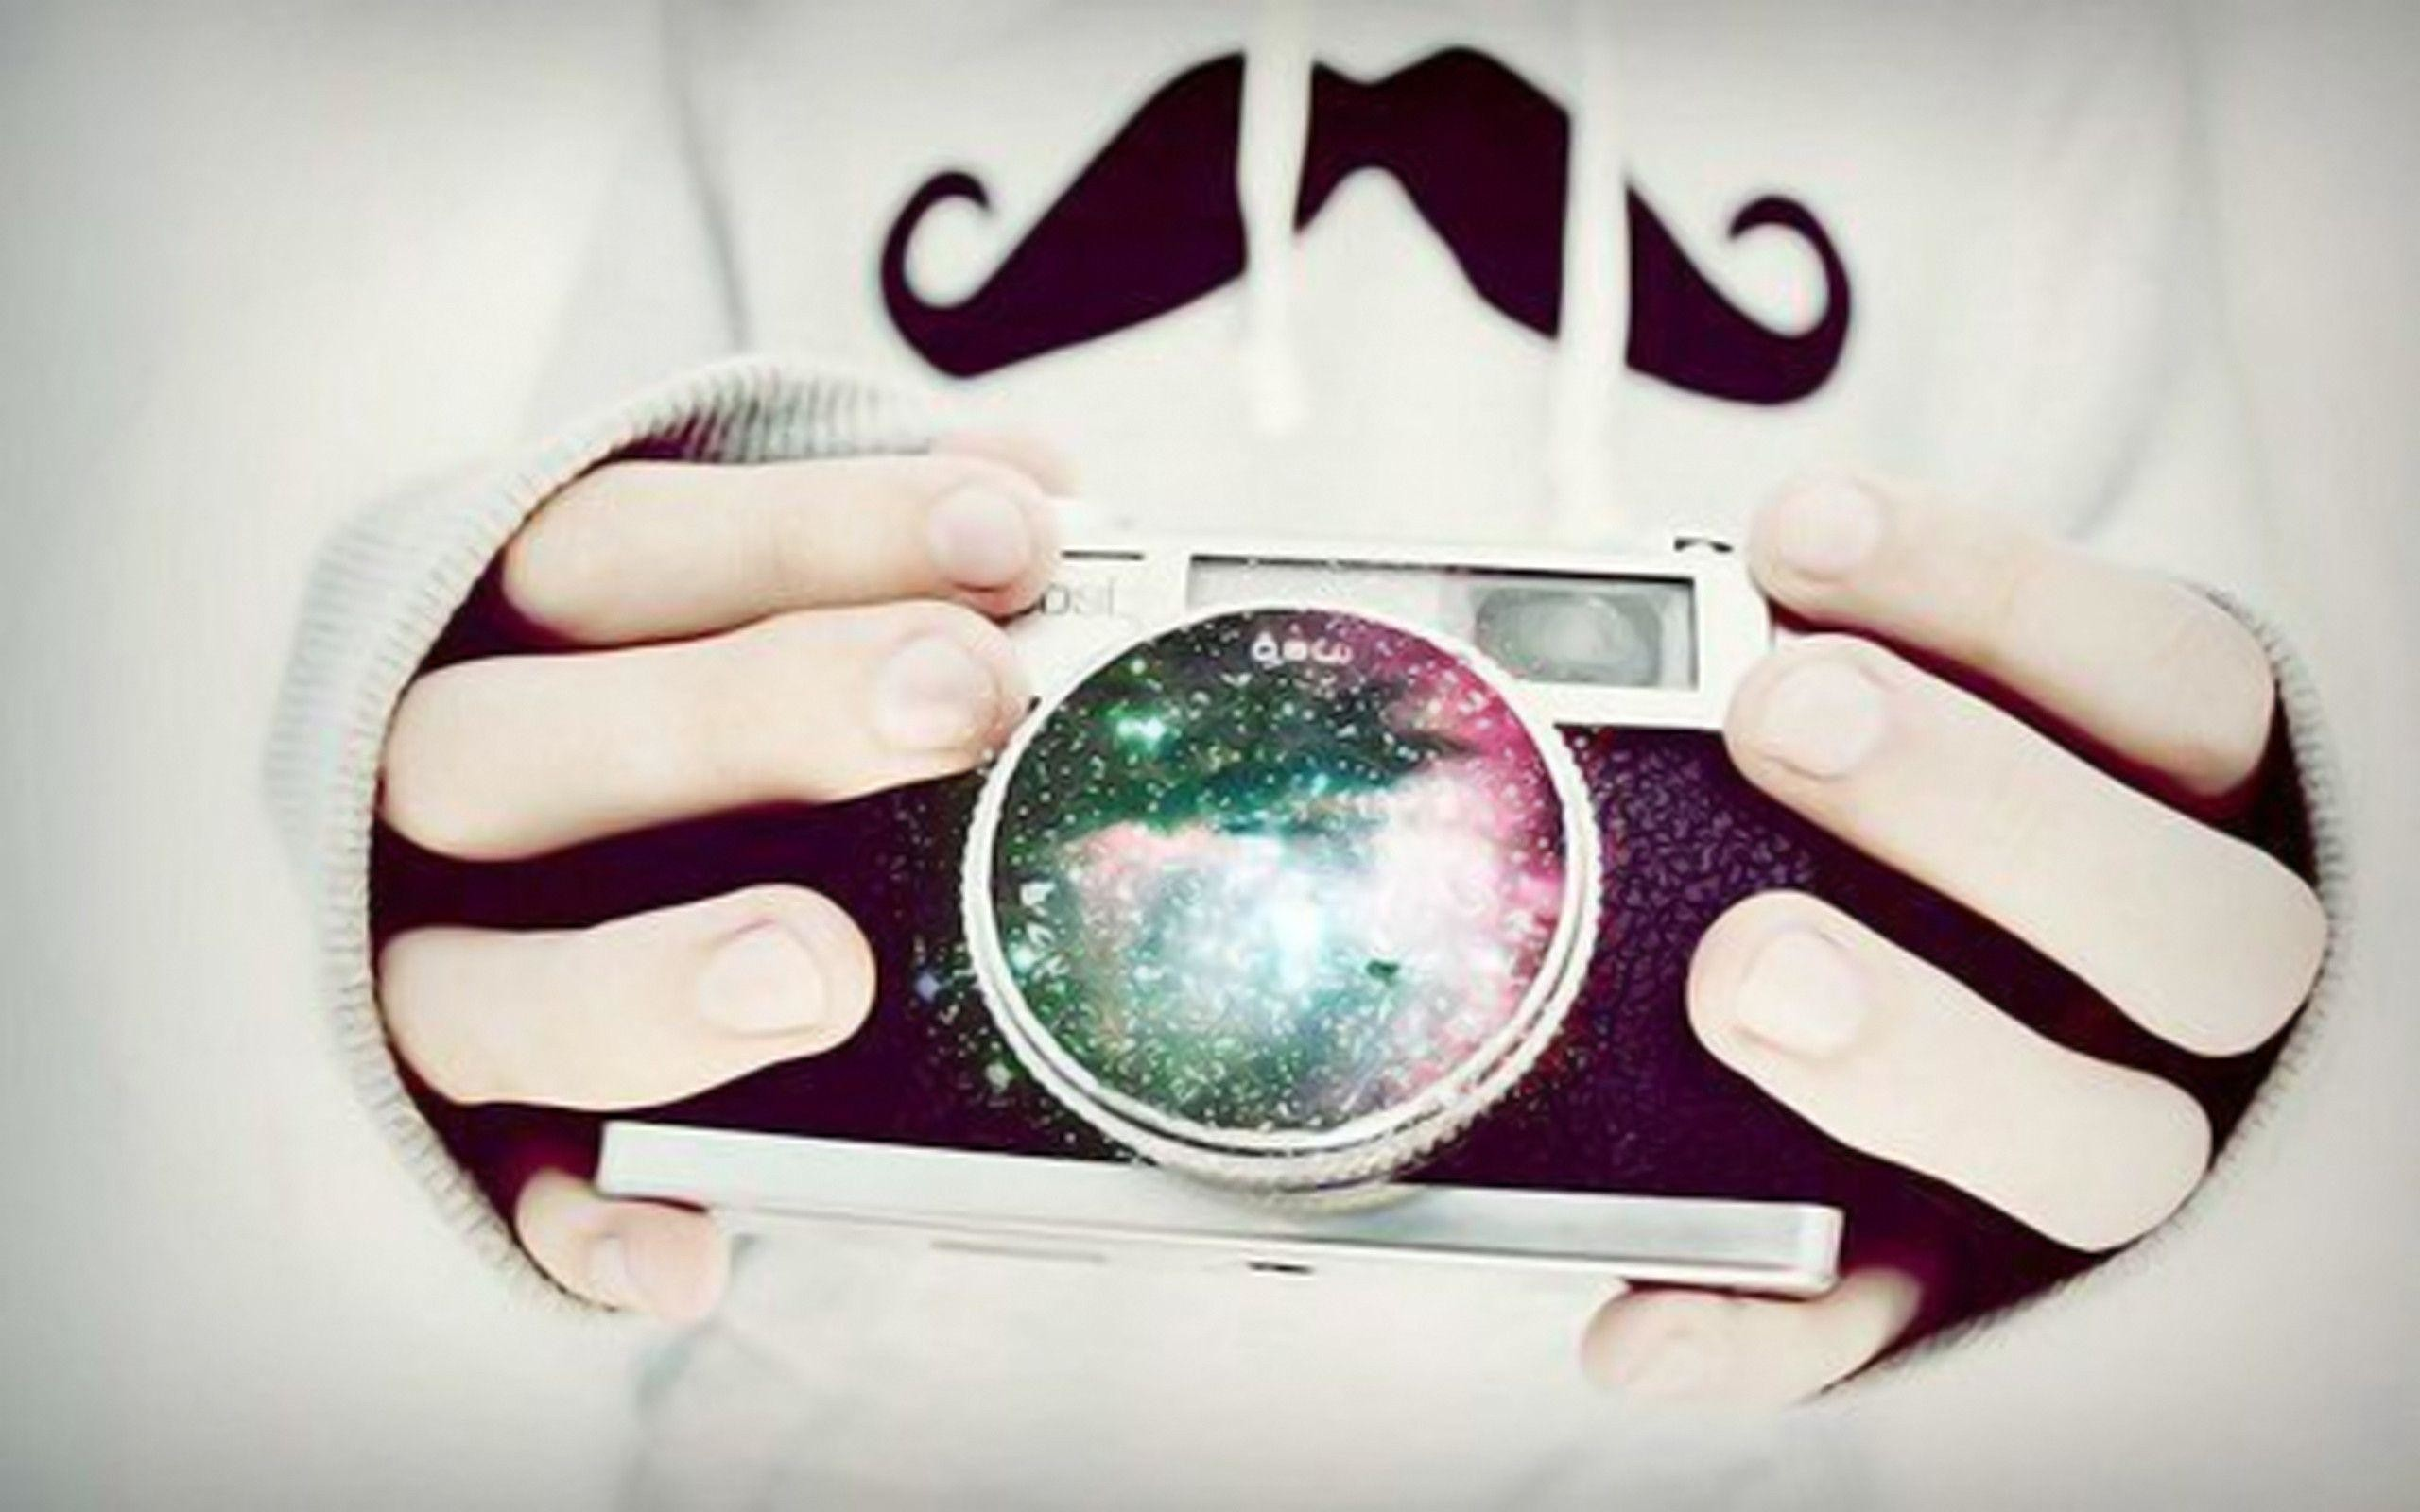 2560x1600 Mustache Wallpaper Tumblr Moustaches And Galaxies Girl